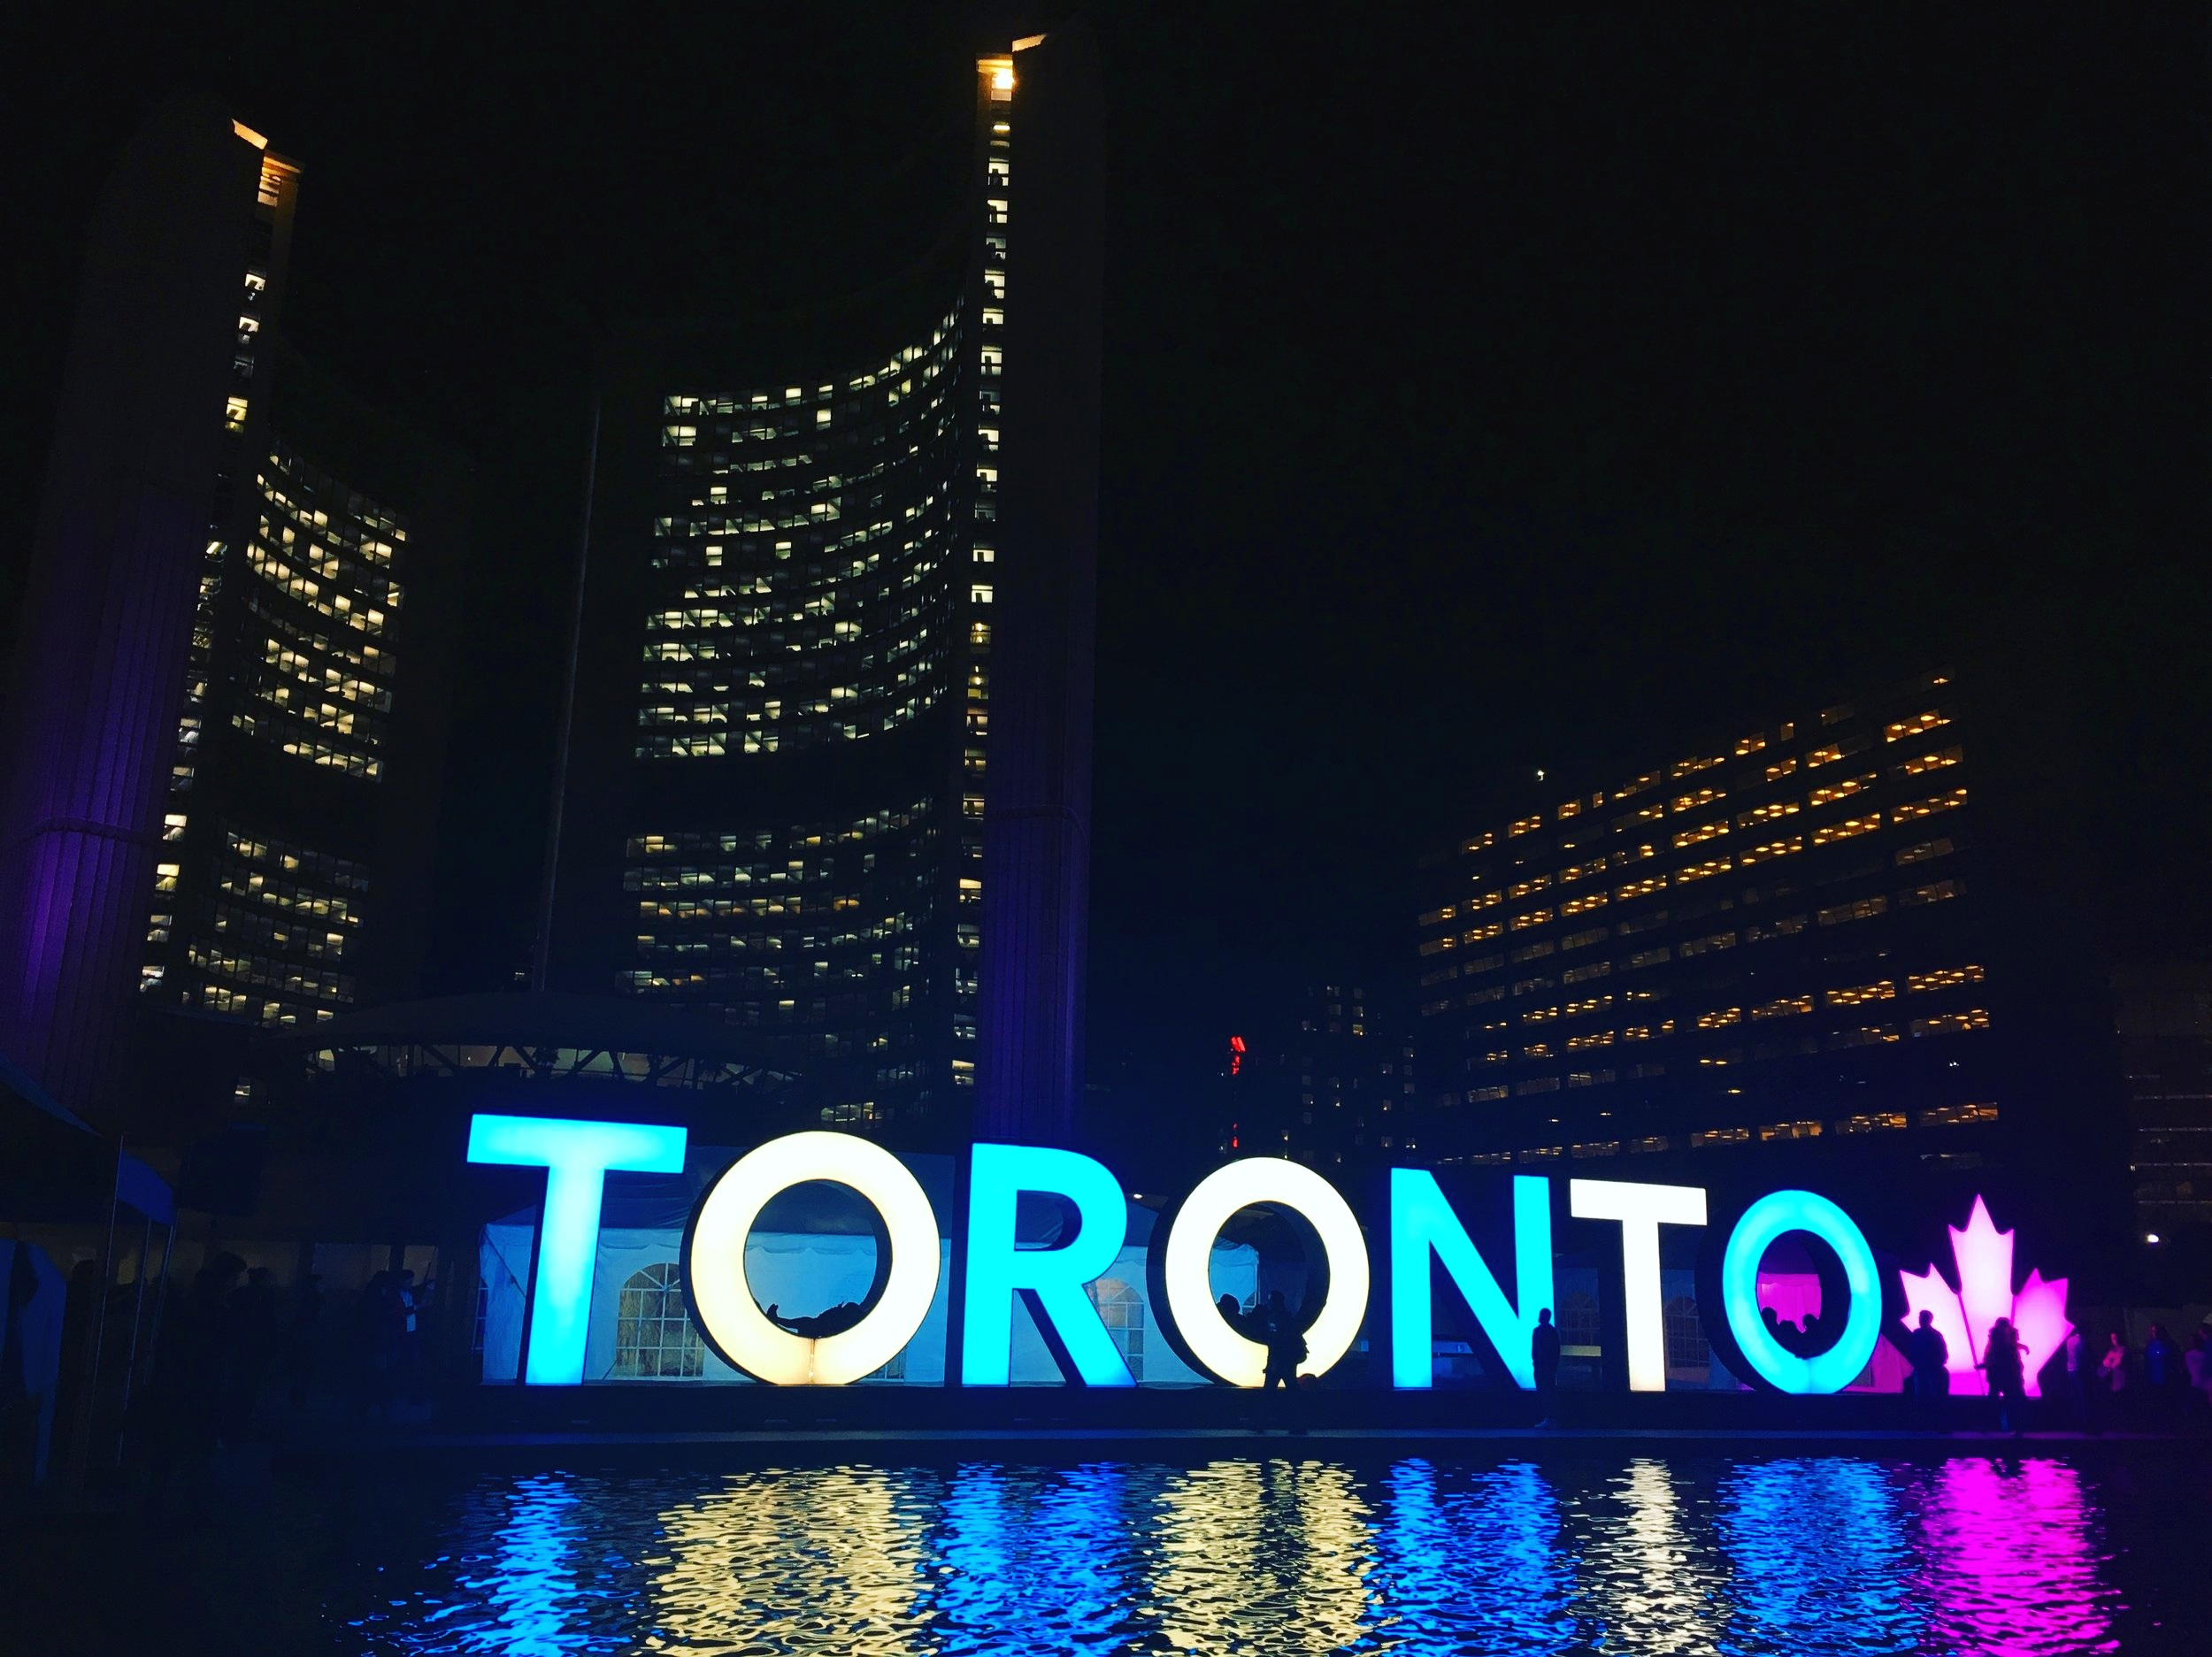 Toronto colourful sign at night - trips from Montreal